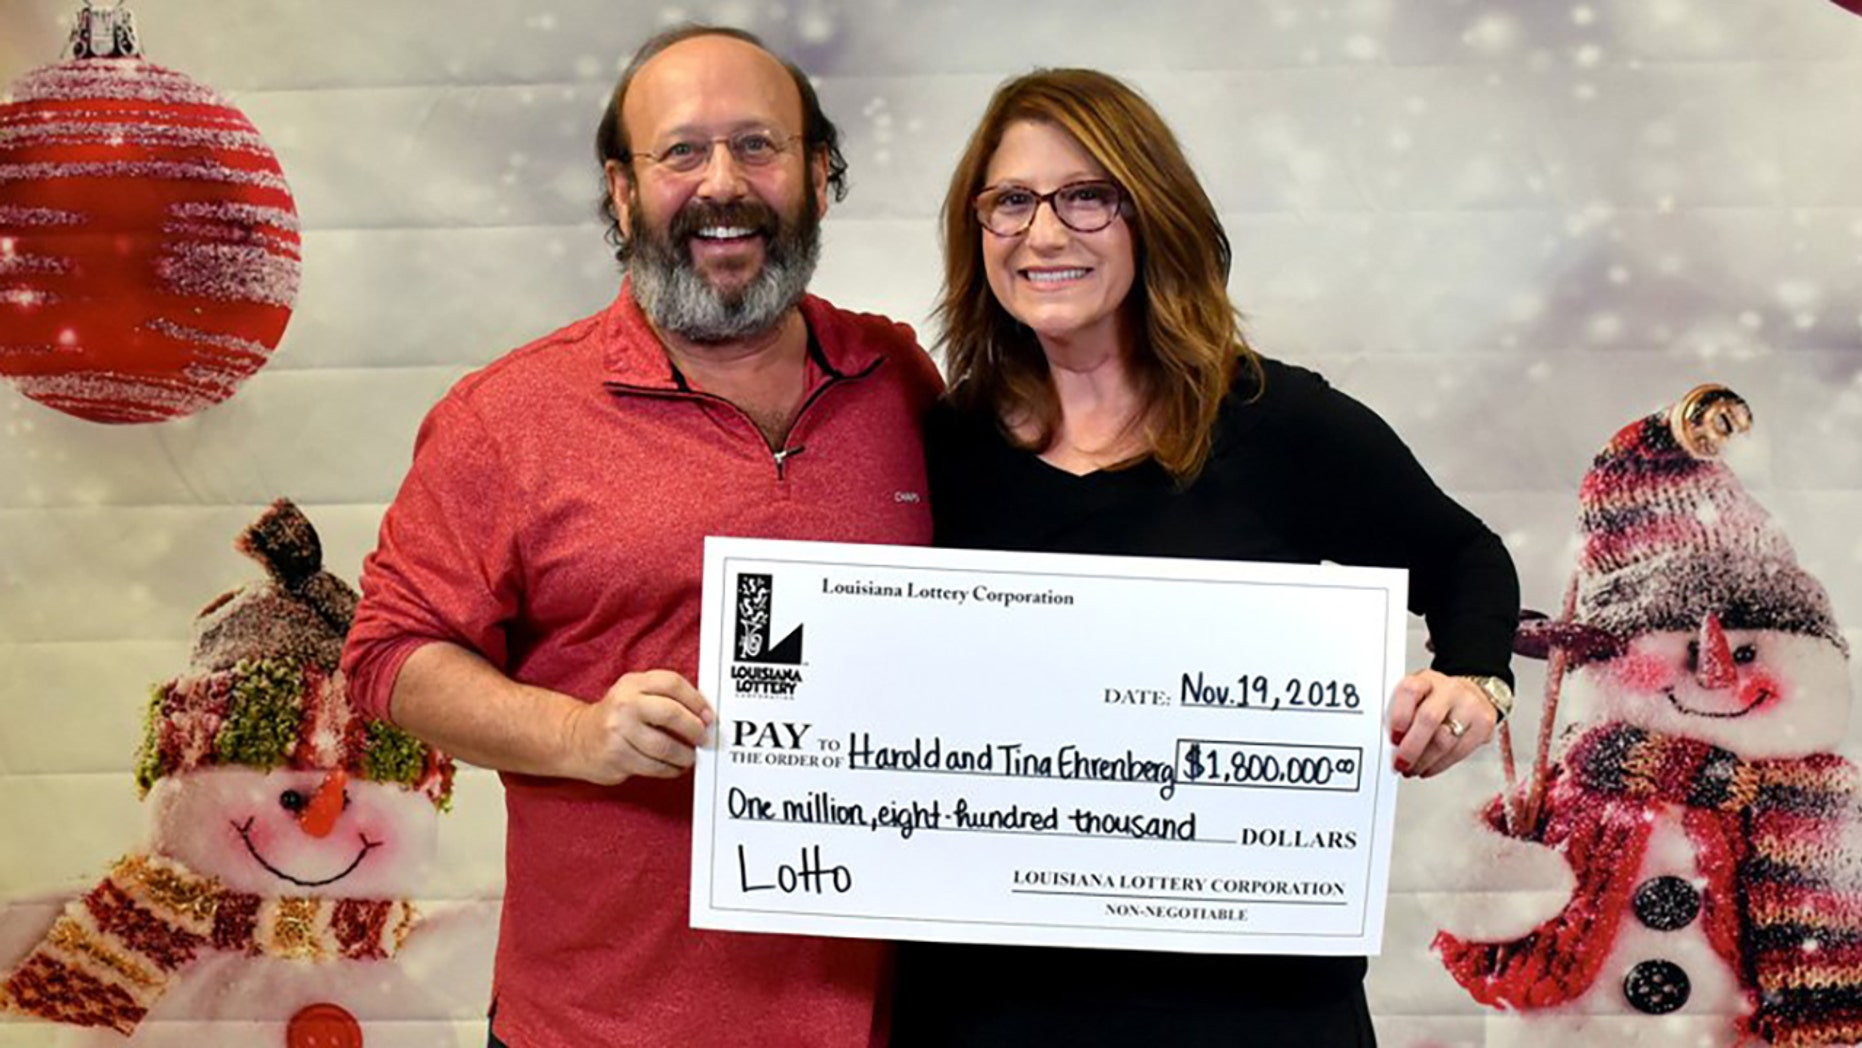 Couple finds winning $1.8 million jackpot ticket while cleaning house